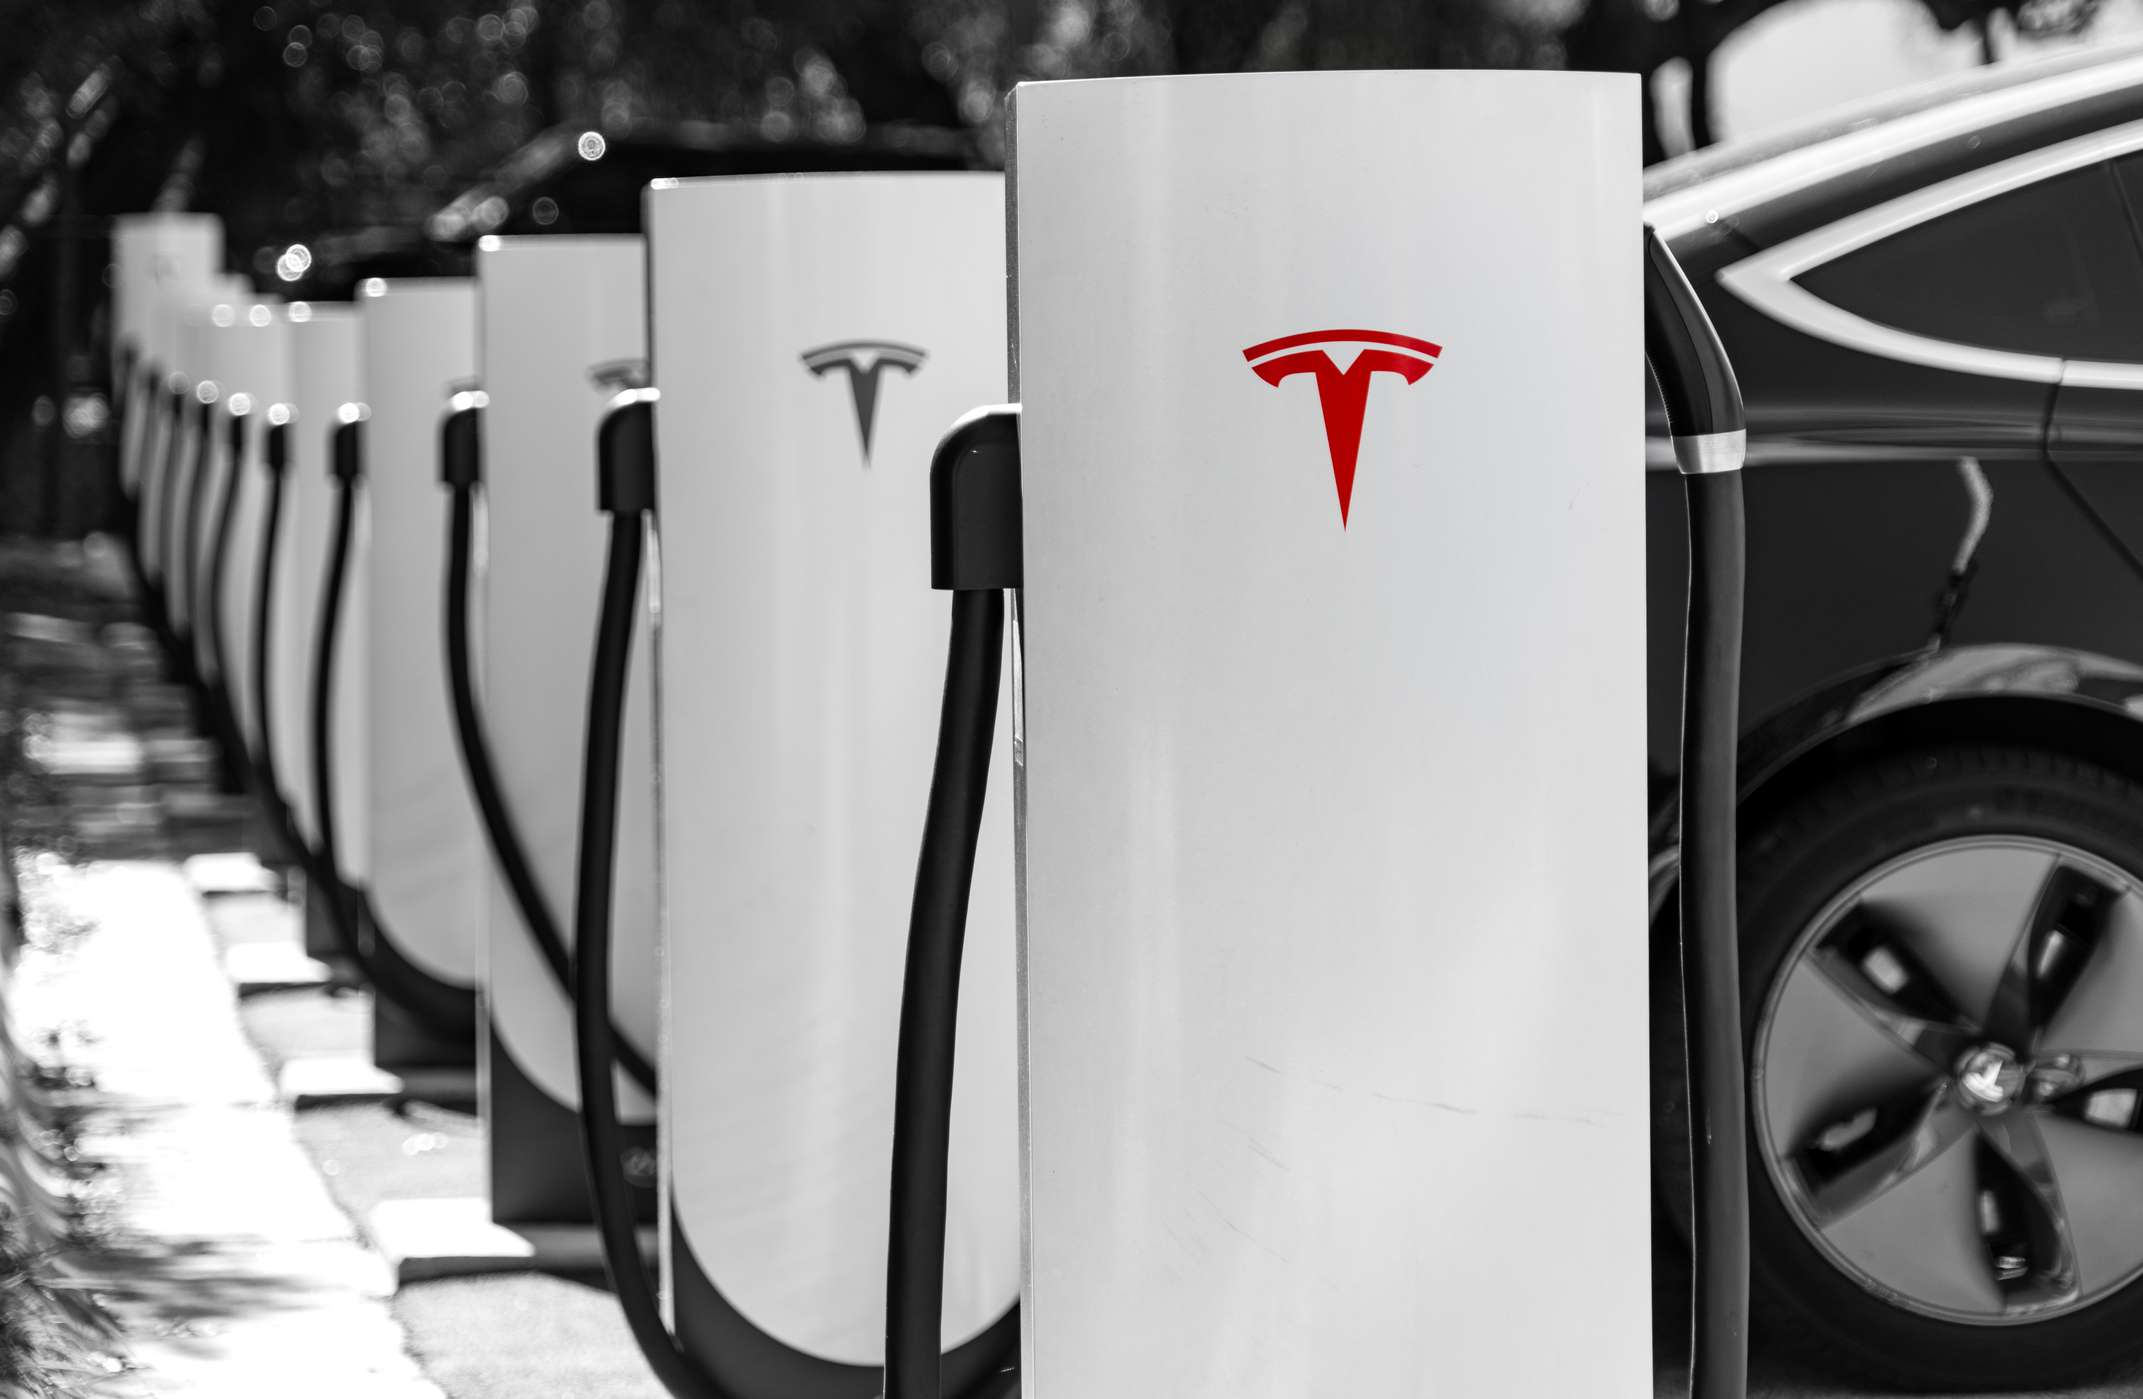 A row of Tesla charging stations.